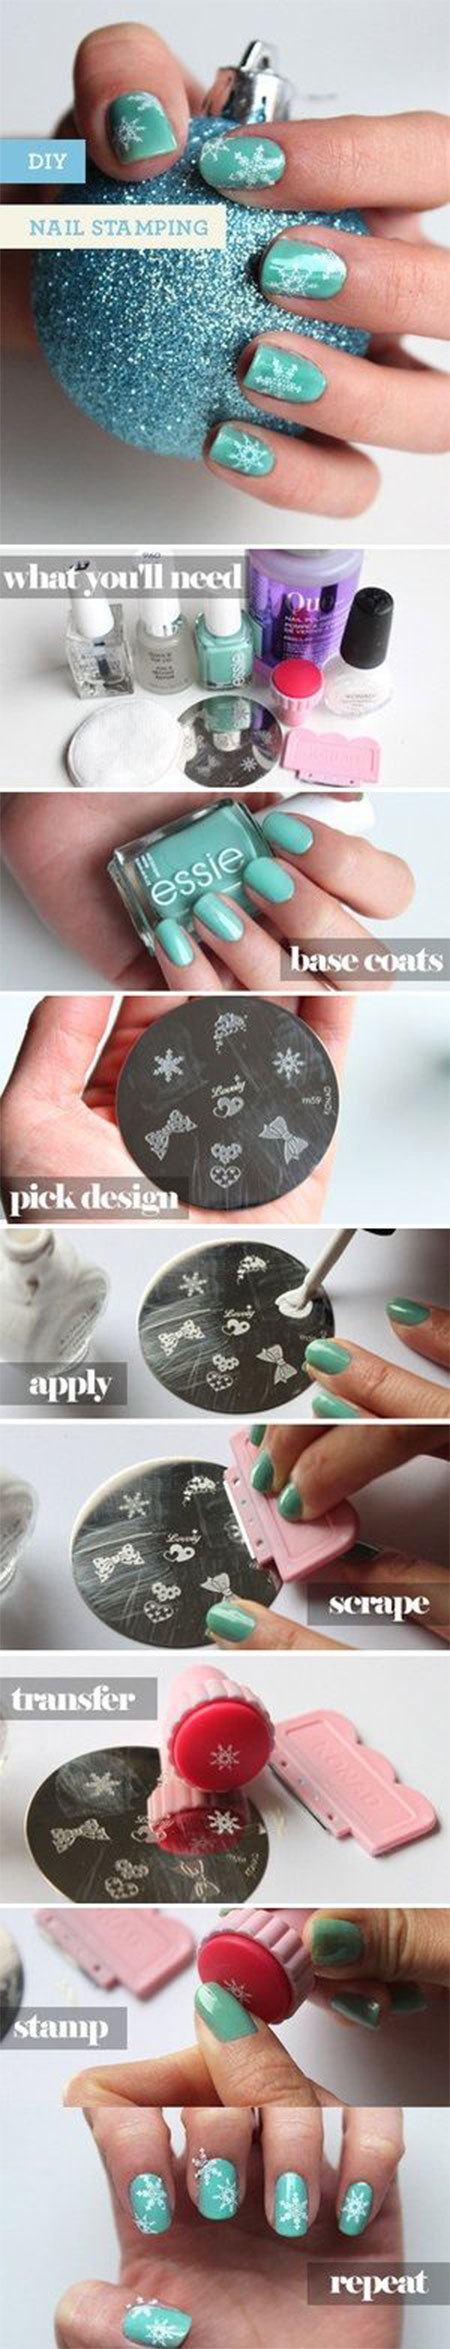 Easy-Winter-Nail-Art-Tutorials-2013-2014-For-Beginners-Learners-5